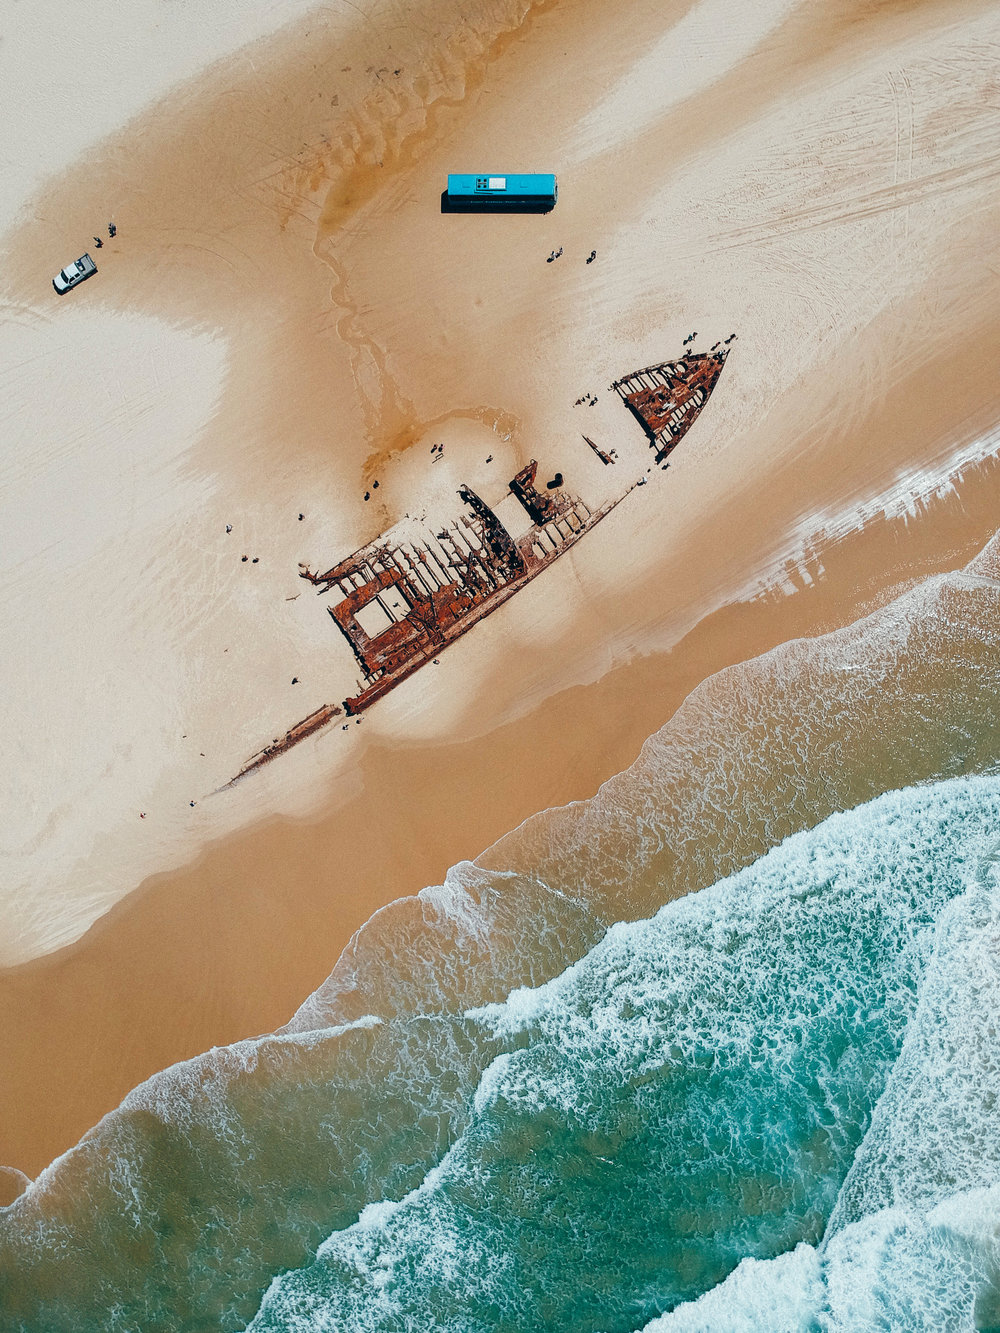 SS Maheno Shipwreck from above